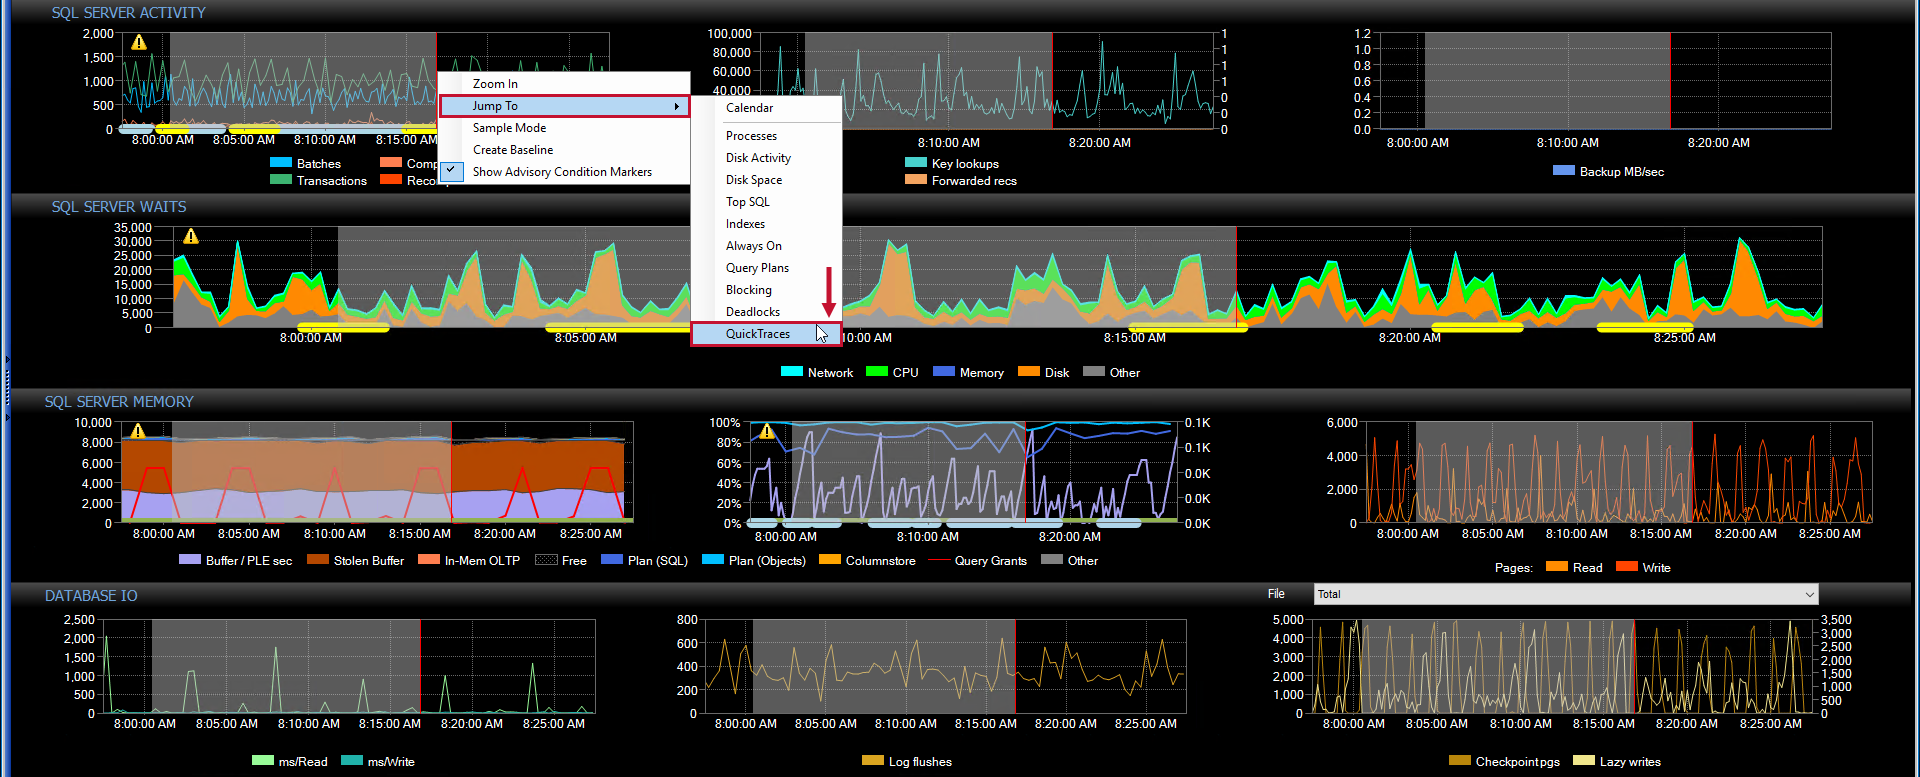 SentryOne Performance Analysis Dashboard Jump To QuickTraces context menu